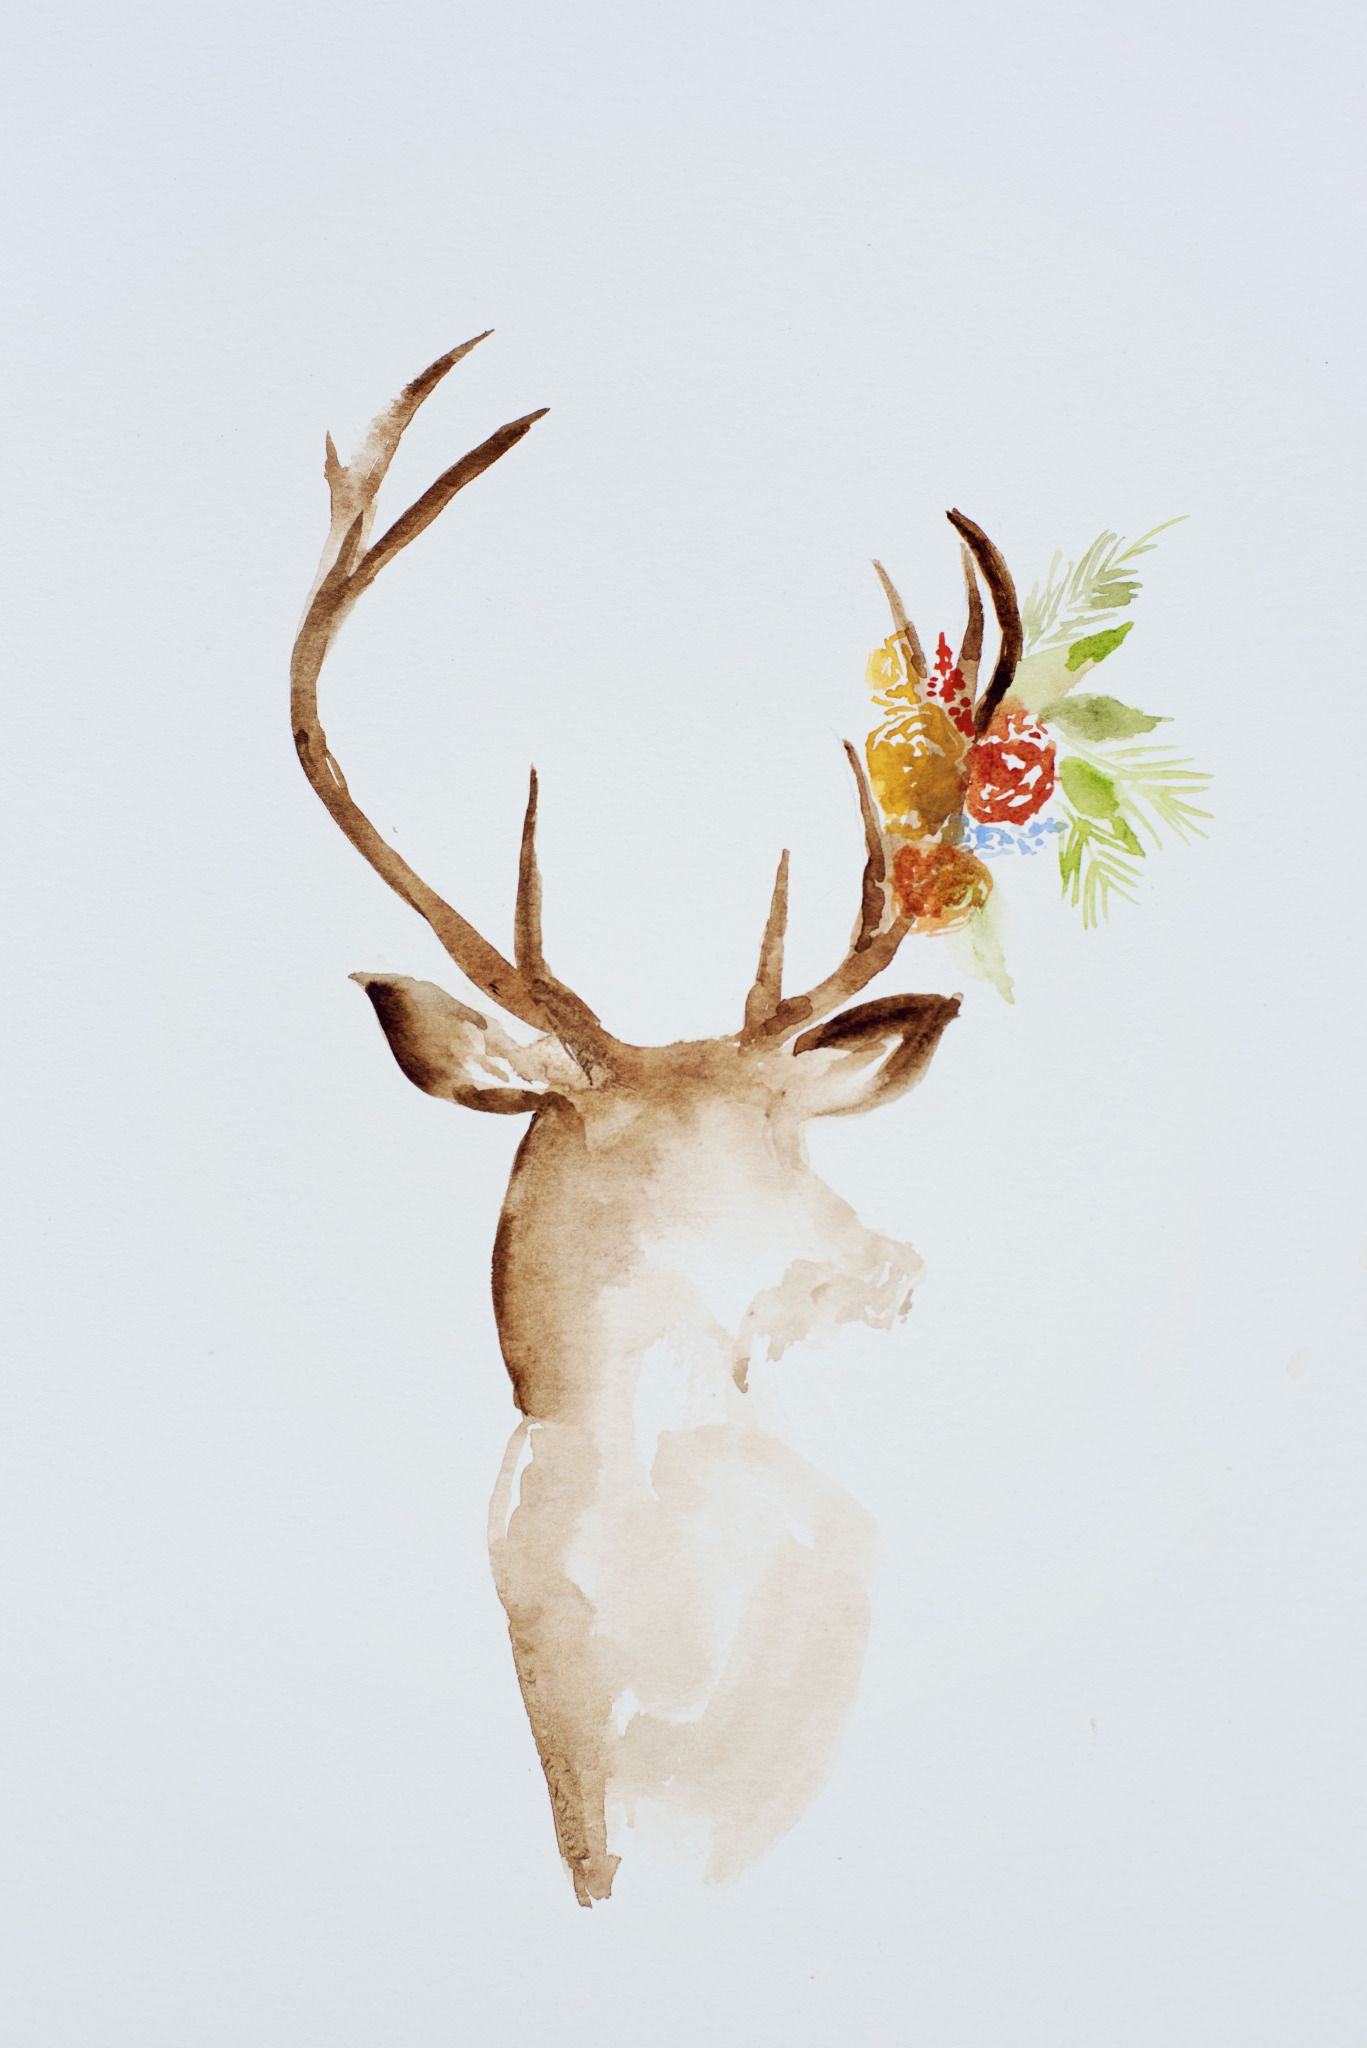 Deer Watercolor 2 Jpg File Shared From Box Christmas